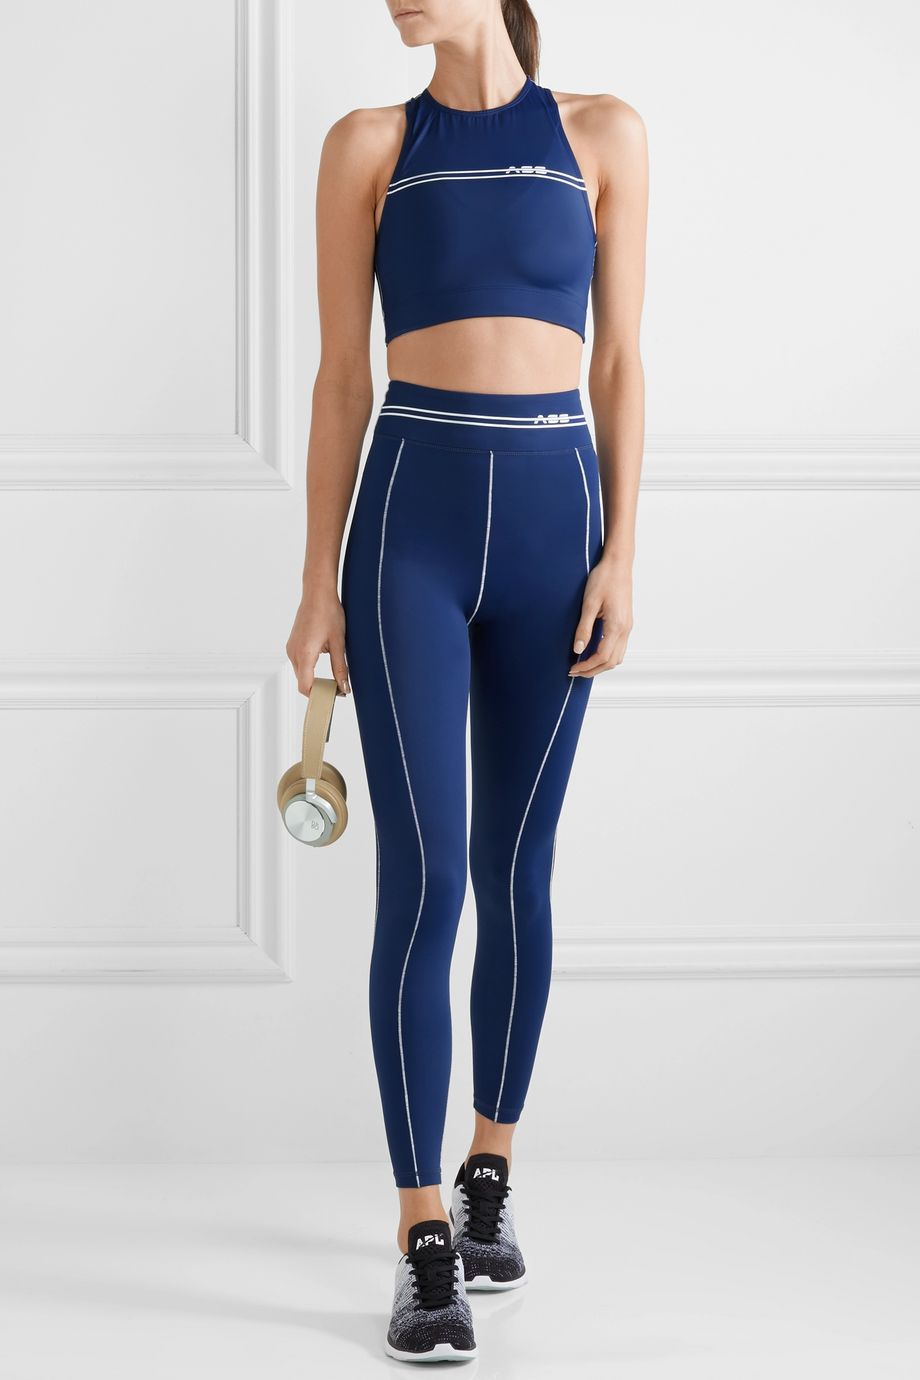 Adam Selman Sport Racer cropped printed stretch top